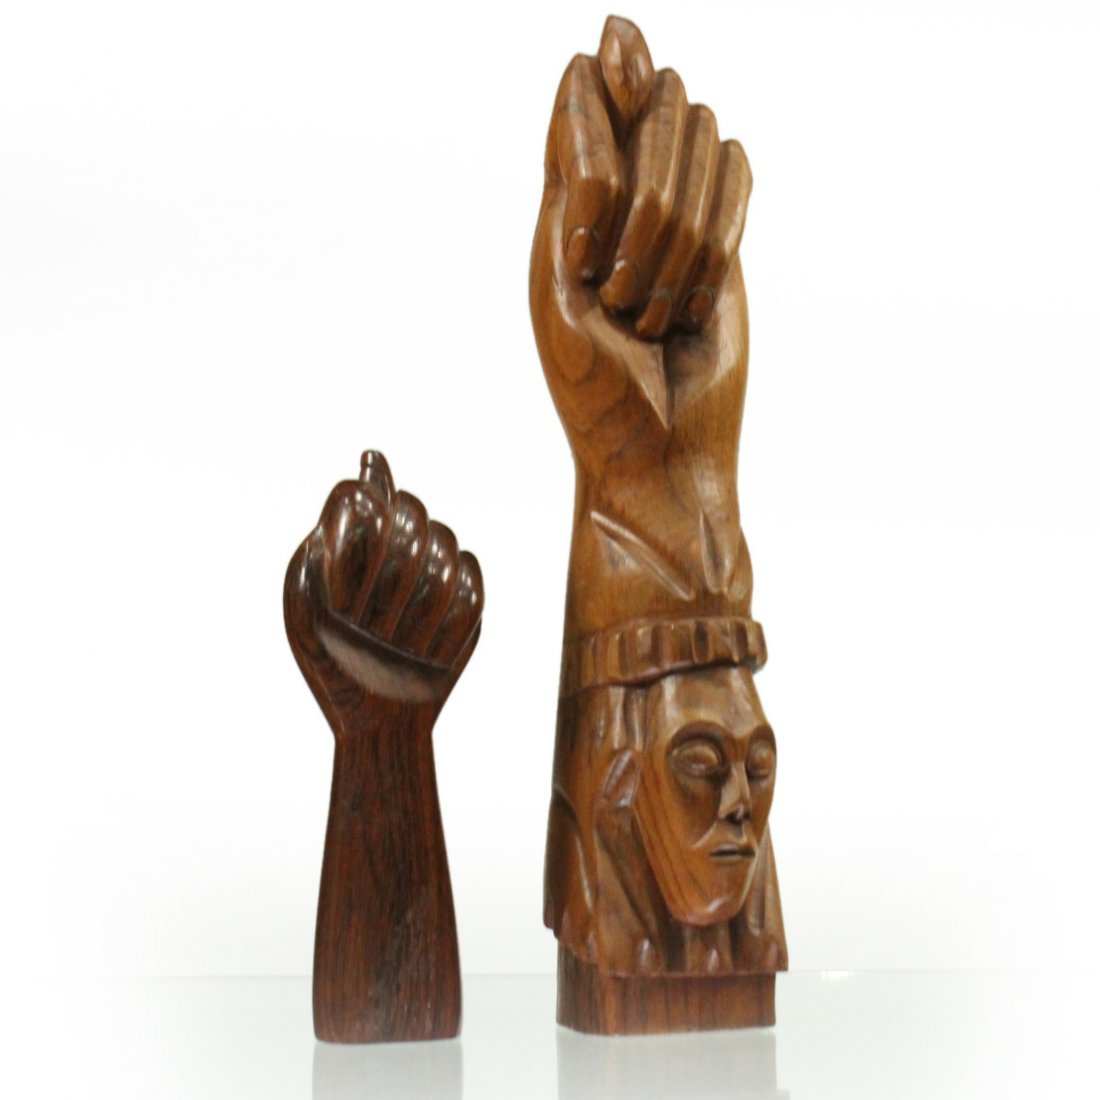 Two [2] Mid-Century Modern Carved Teak Hand Sculptures